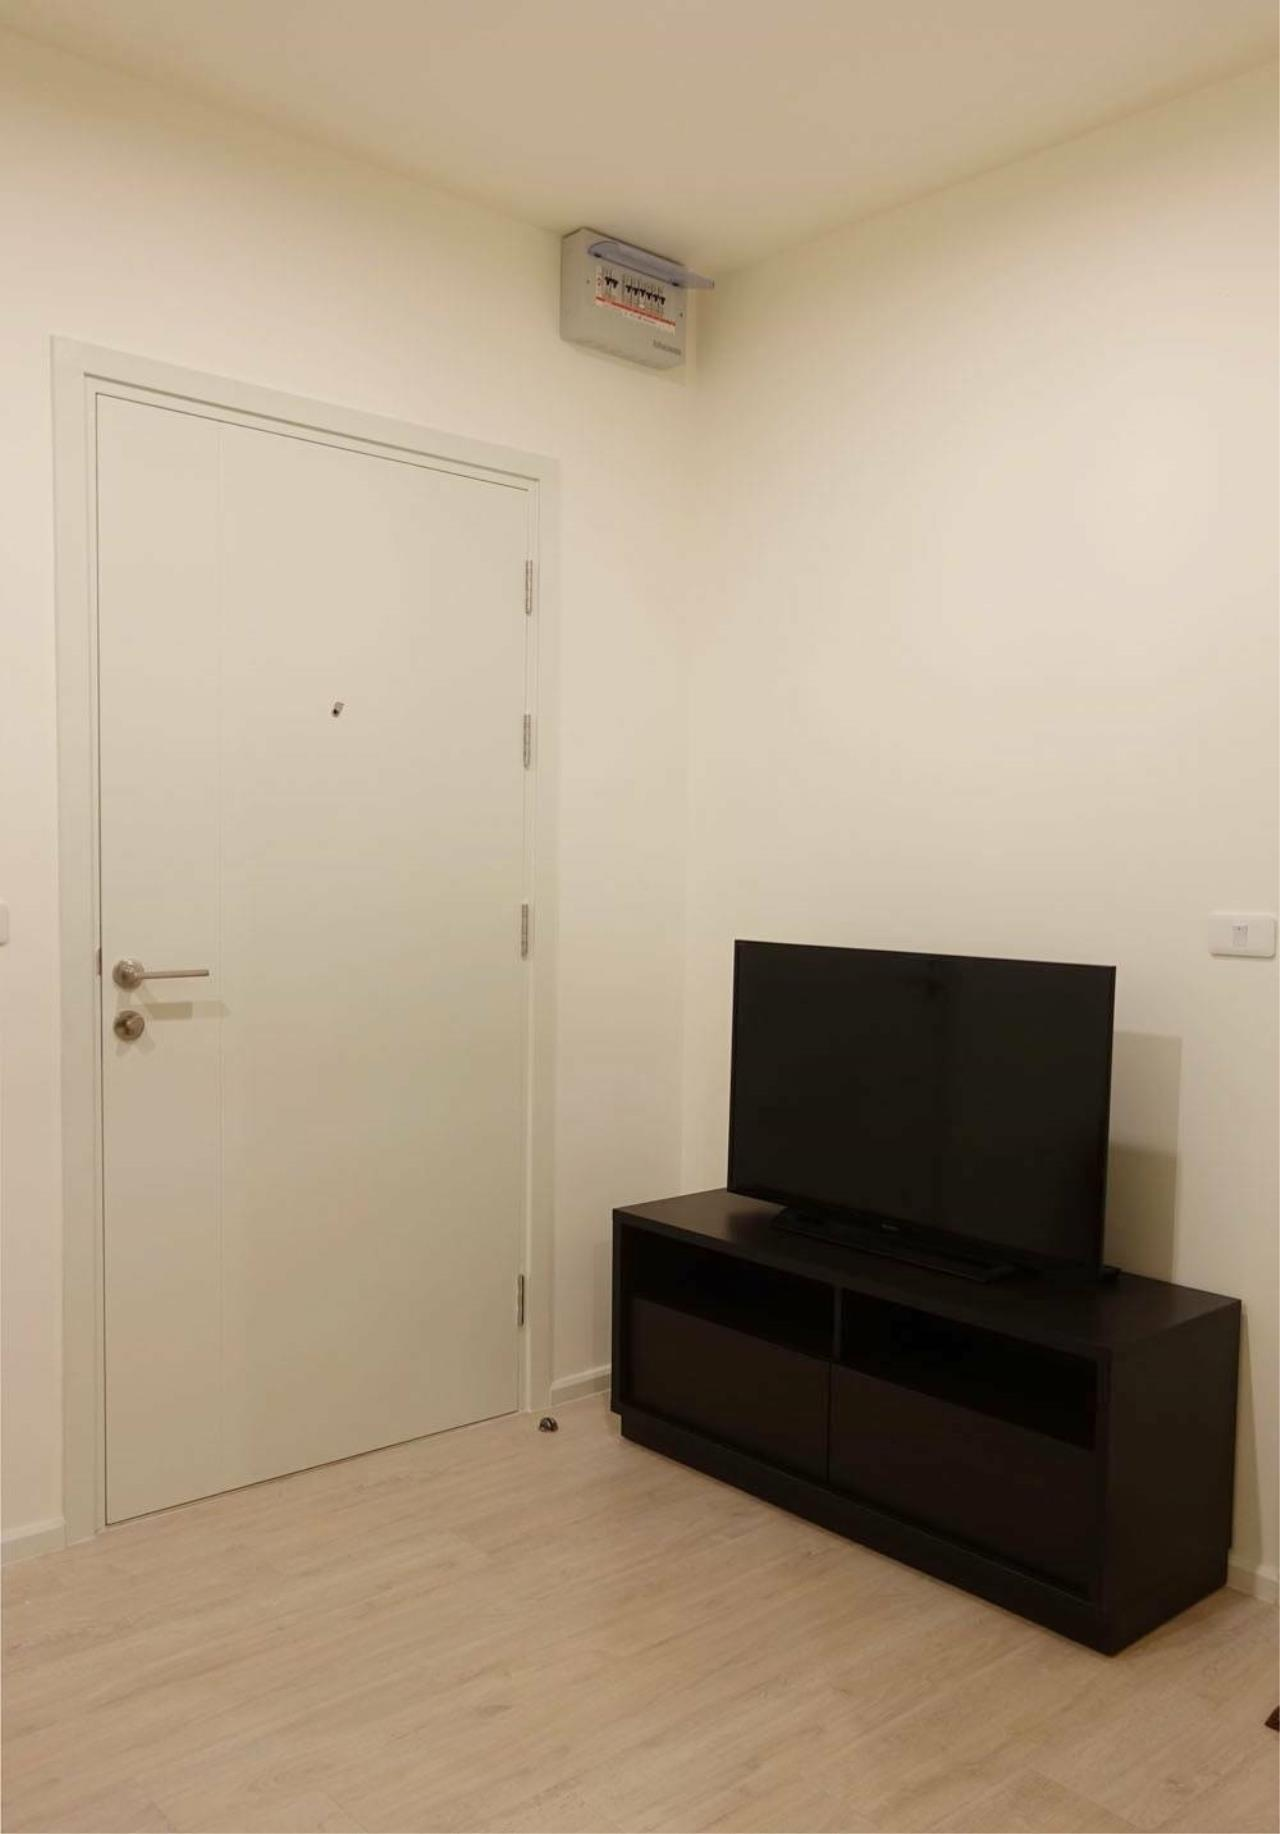 SALA ESTATE Agency's (FOR RENT)ASPIRE SATHORN - THAPRA – BTS TALAT PHLU, 31 SQM 1 BEDROOM 1 BATHROOM, FULLY FURNISHED 5